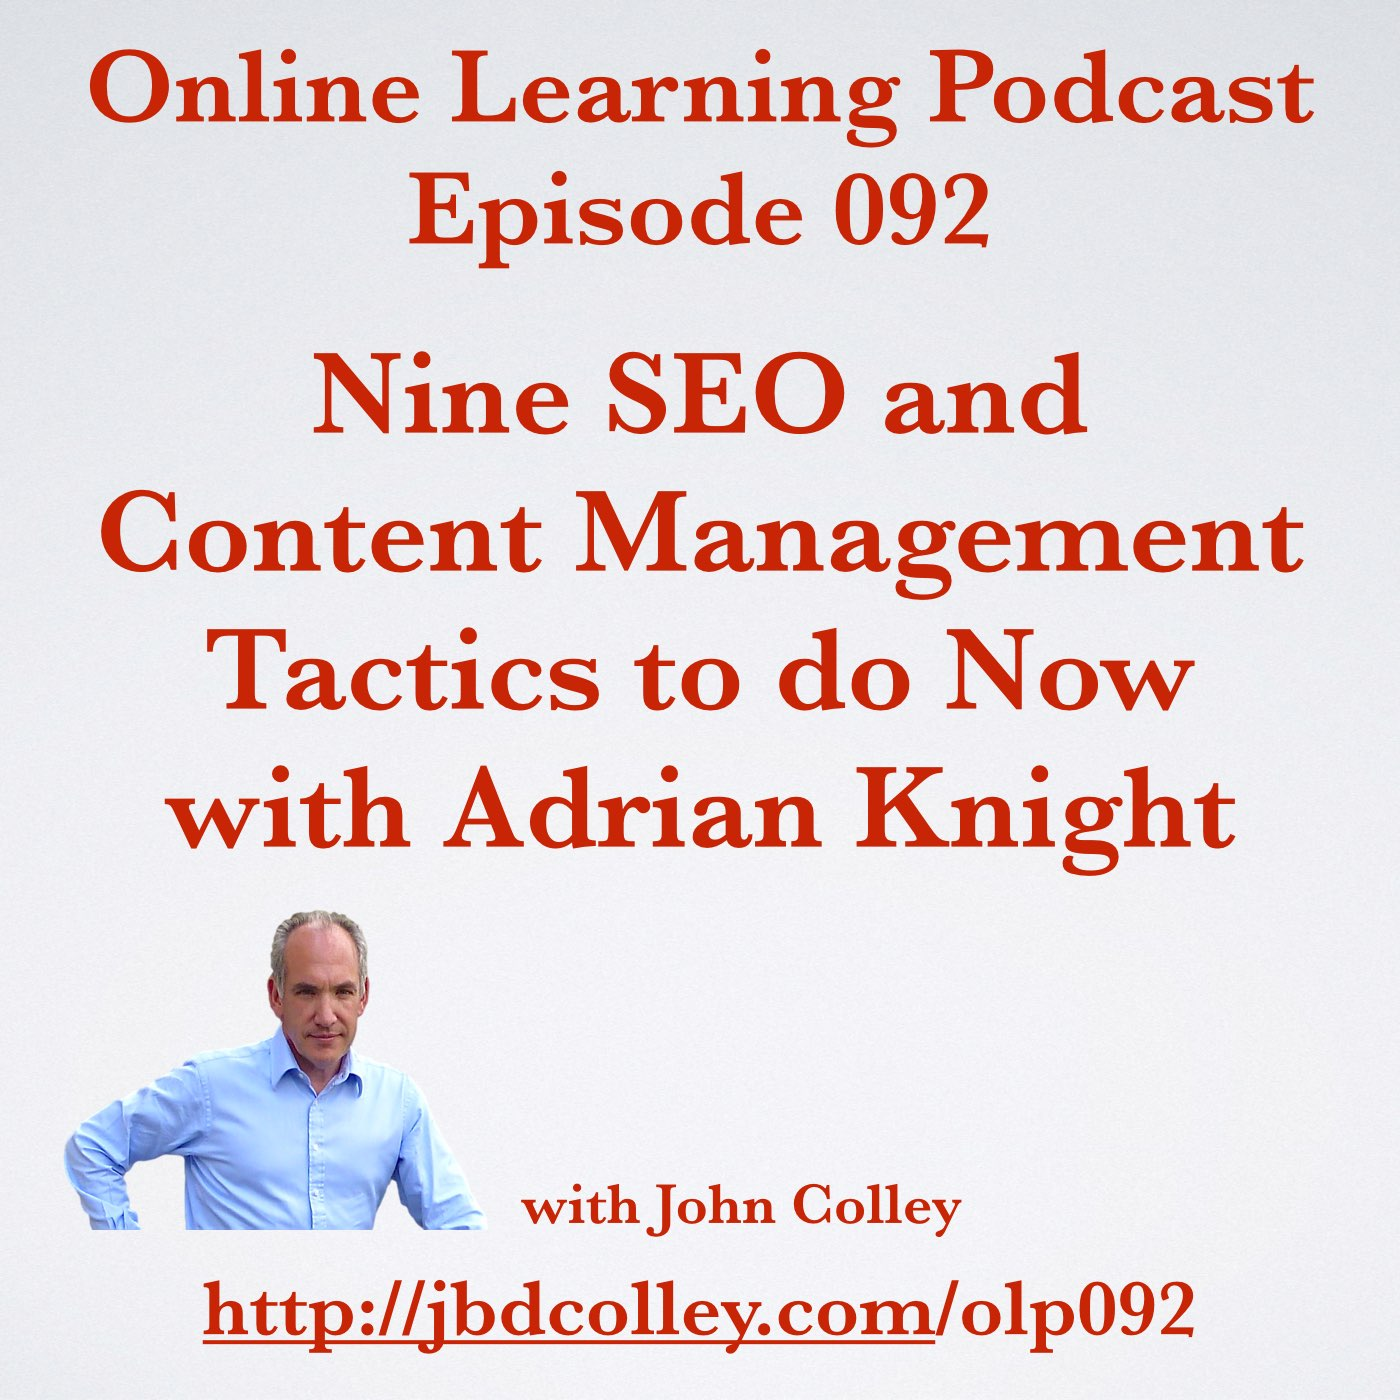 OLP092 Nine SEO and Content Management Tactics to do Now with Adrian Knight